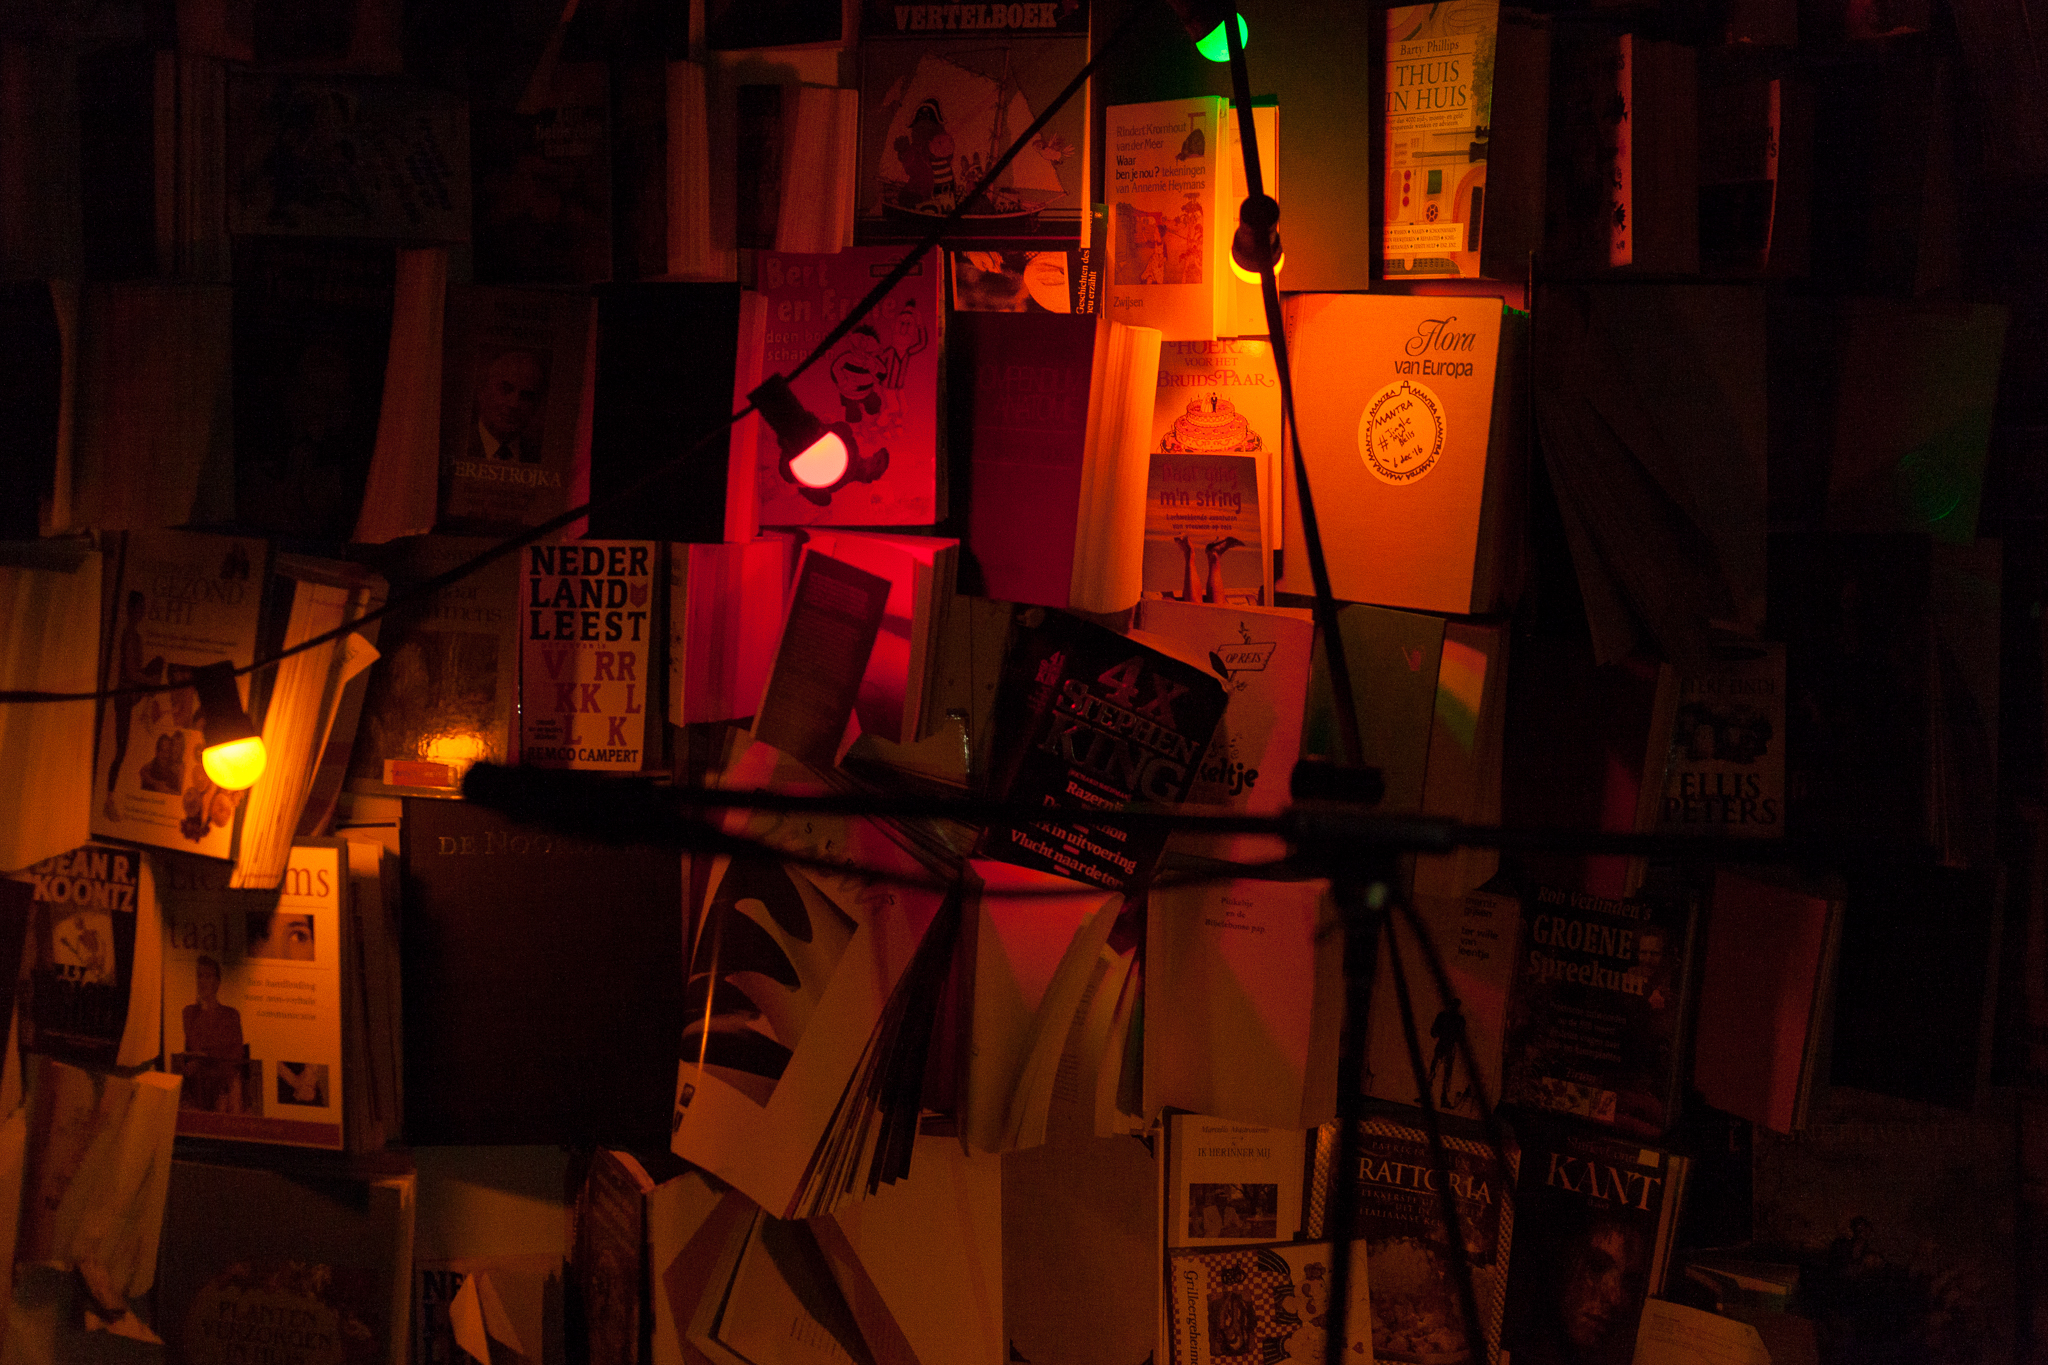 Red light district ambiance in one of Rilan's music chambers as old books are used to absorb sound, Photo credit: Richard Terborg